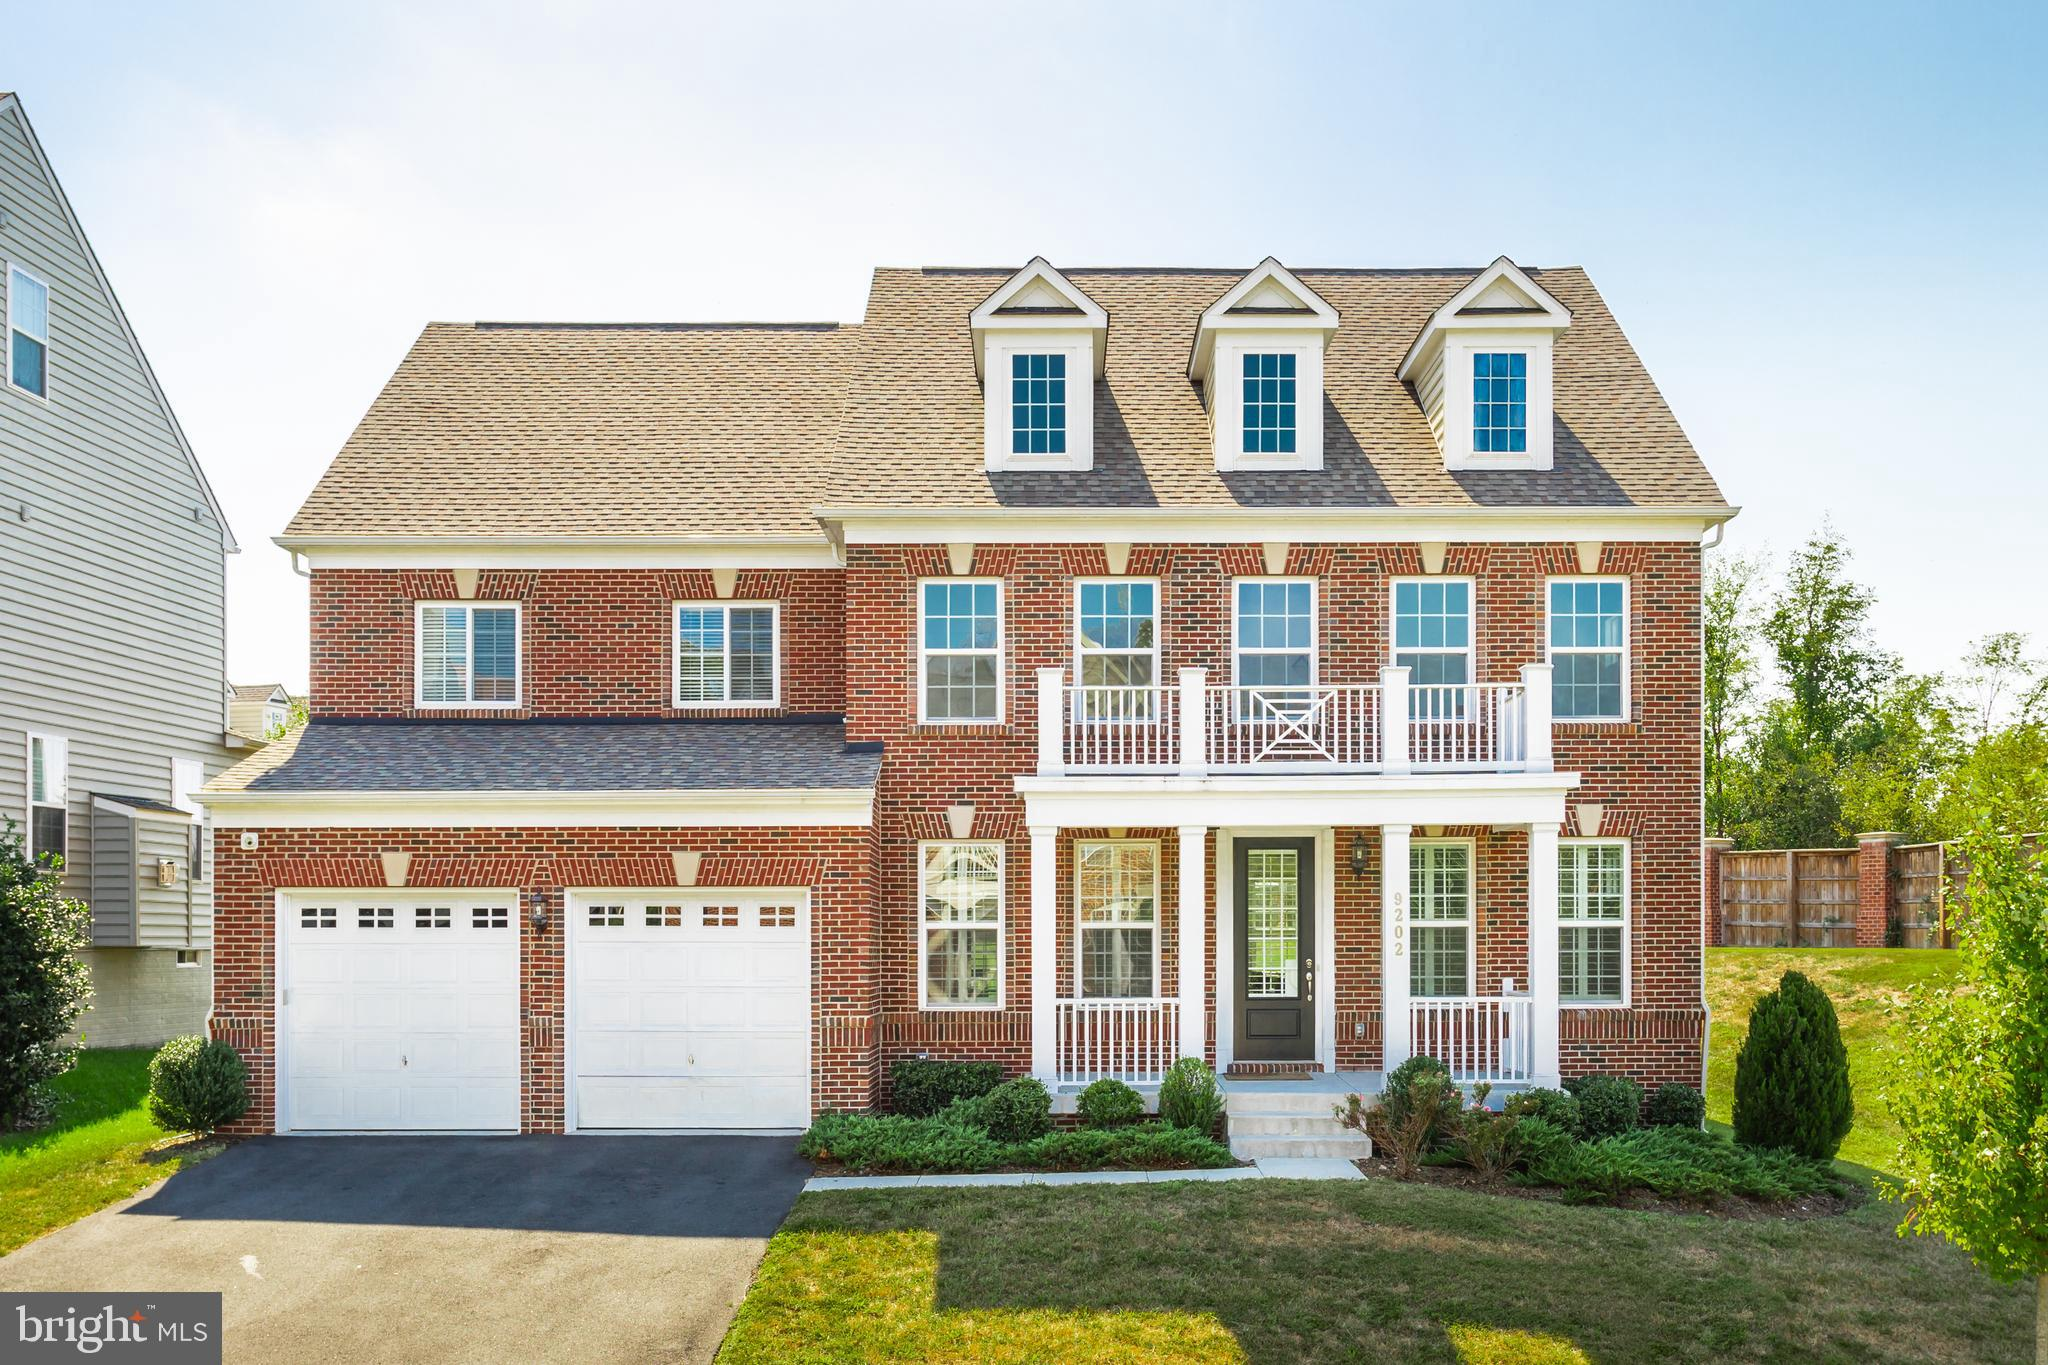 Fabulous 4 level Stanley Martin Carey model. Four sided brick. Six bedrooms 5.5 baths. 3683 finished Sq FT on the upper three levels; finished lower level; Open floor plan. Close to Fort Belvoir and Lorton Station VRE. Commuter's Dream!